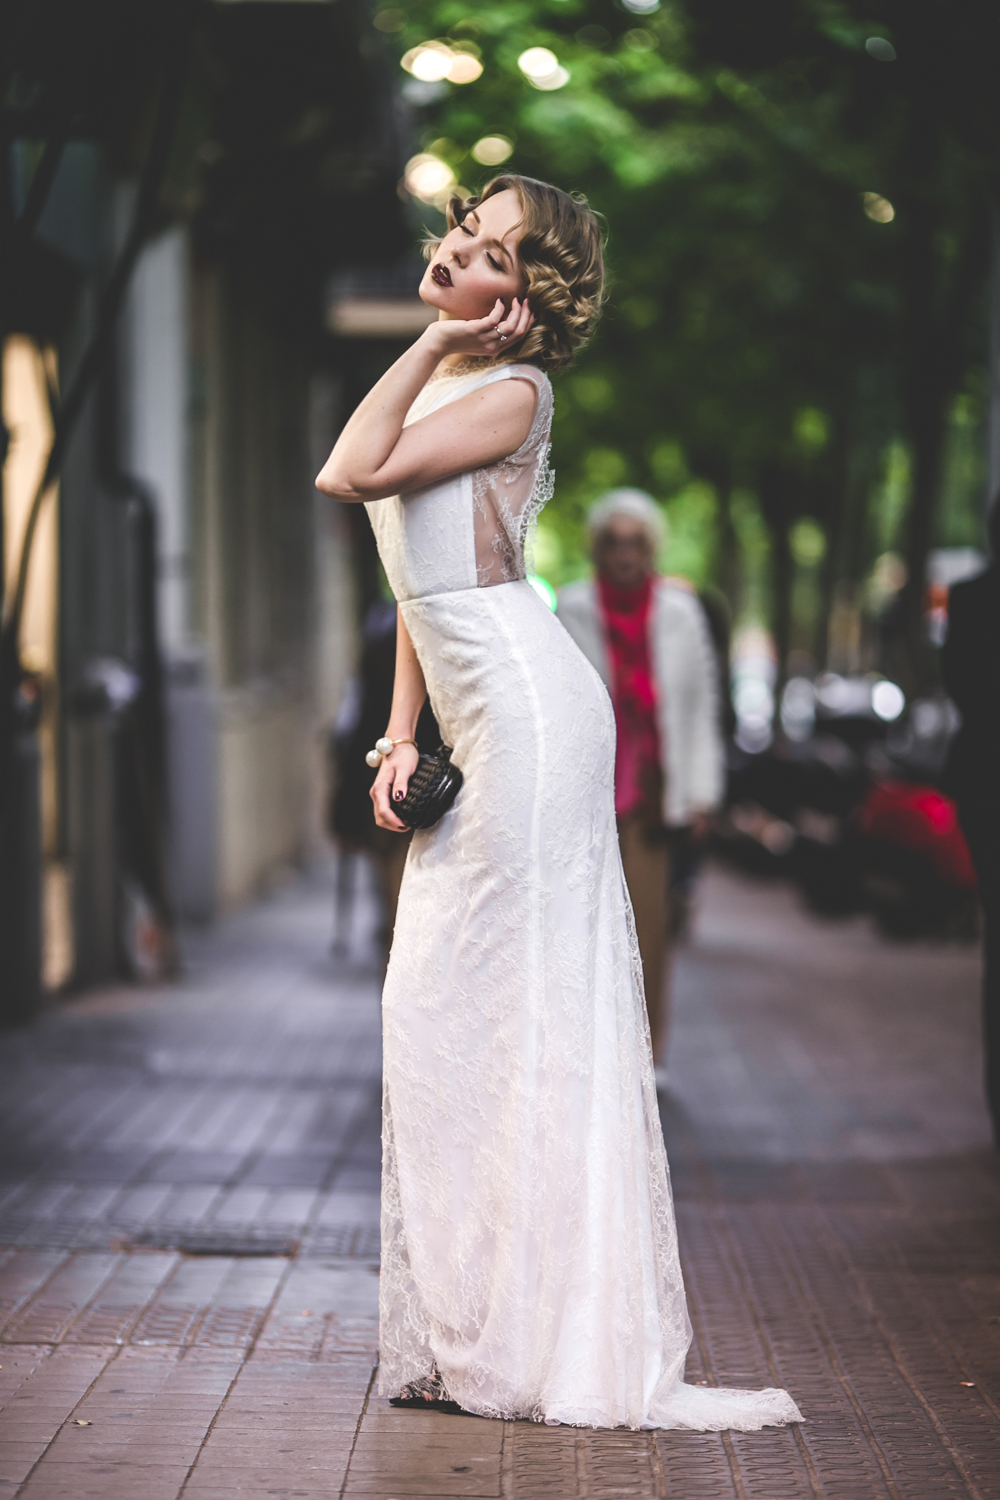 darya kamalova fashion blogger from thecablook in trip in Barcelona Spain with Pronovias 2015 wedding dresses collection catwalk wearing uel camilo white gown bottega veneta knot clutch and black lips-1722